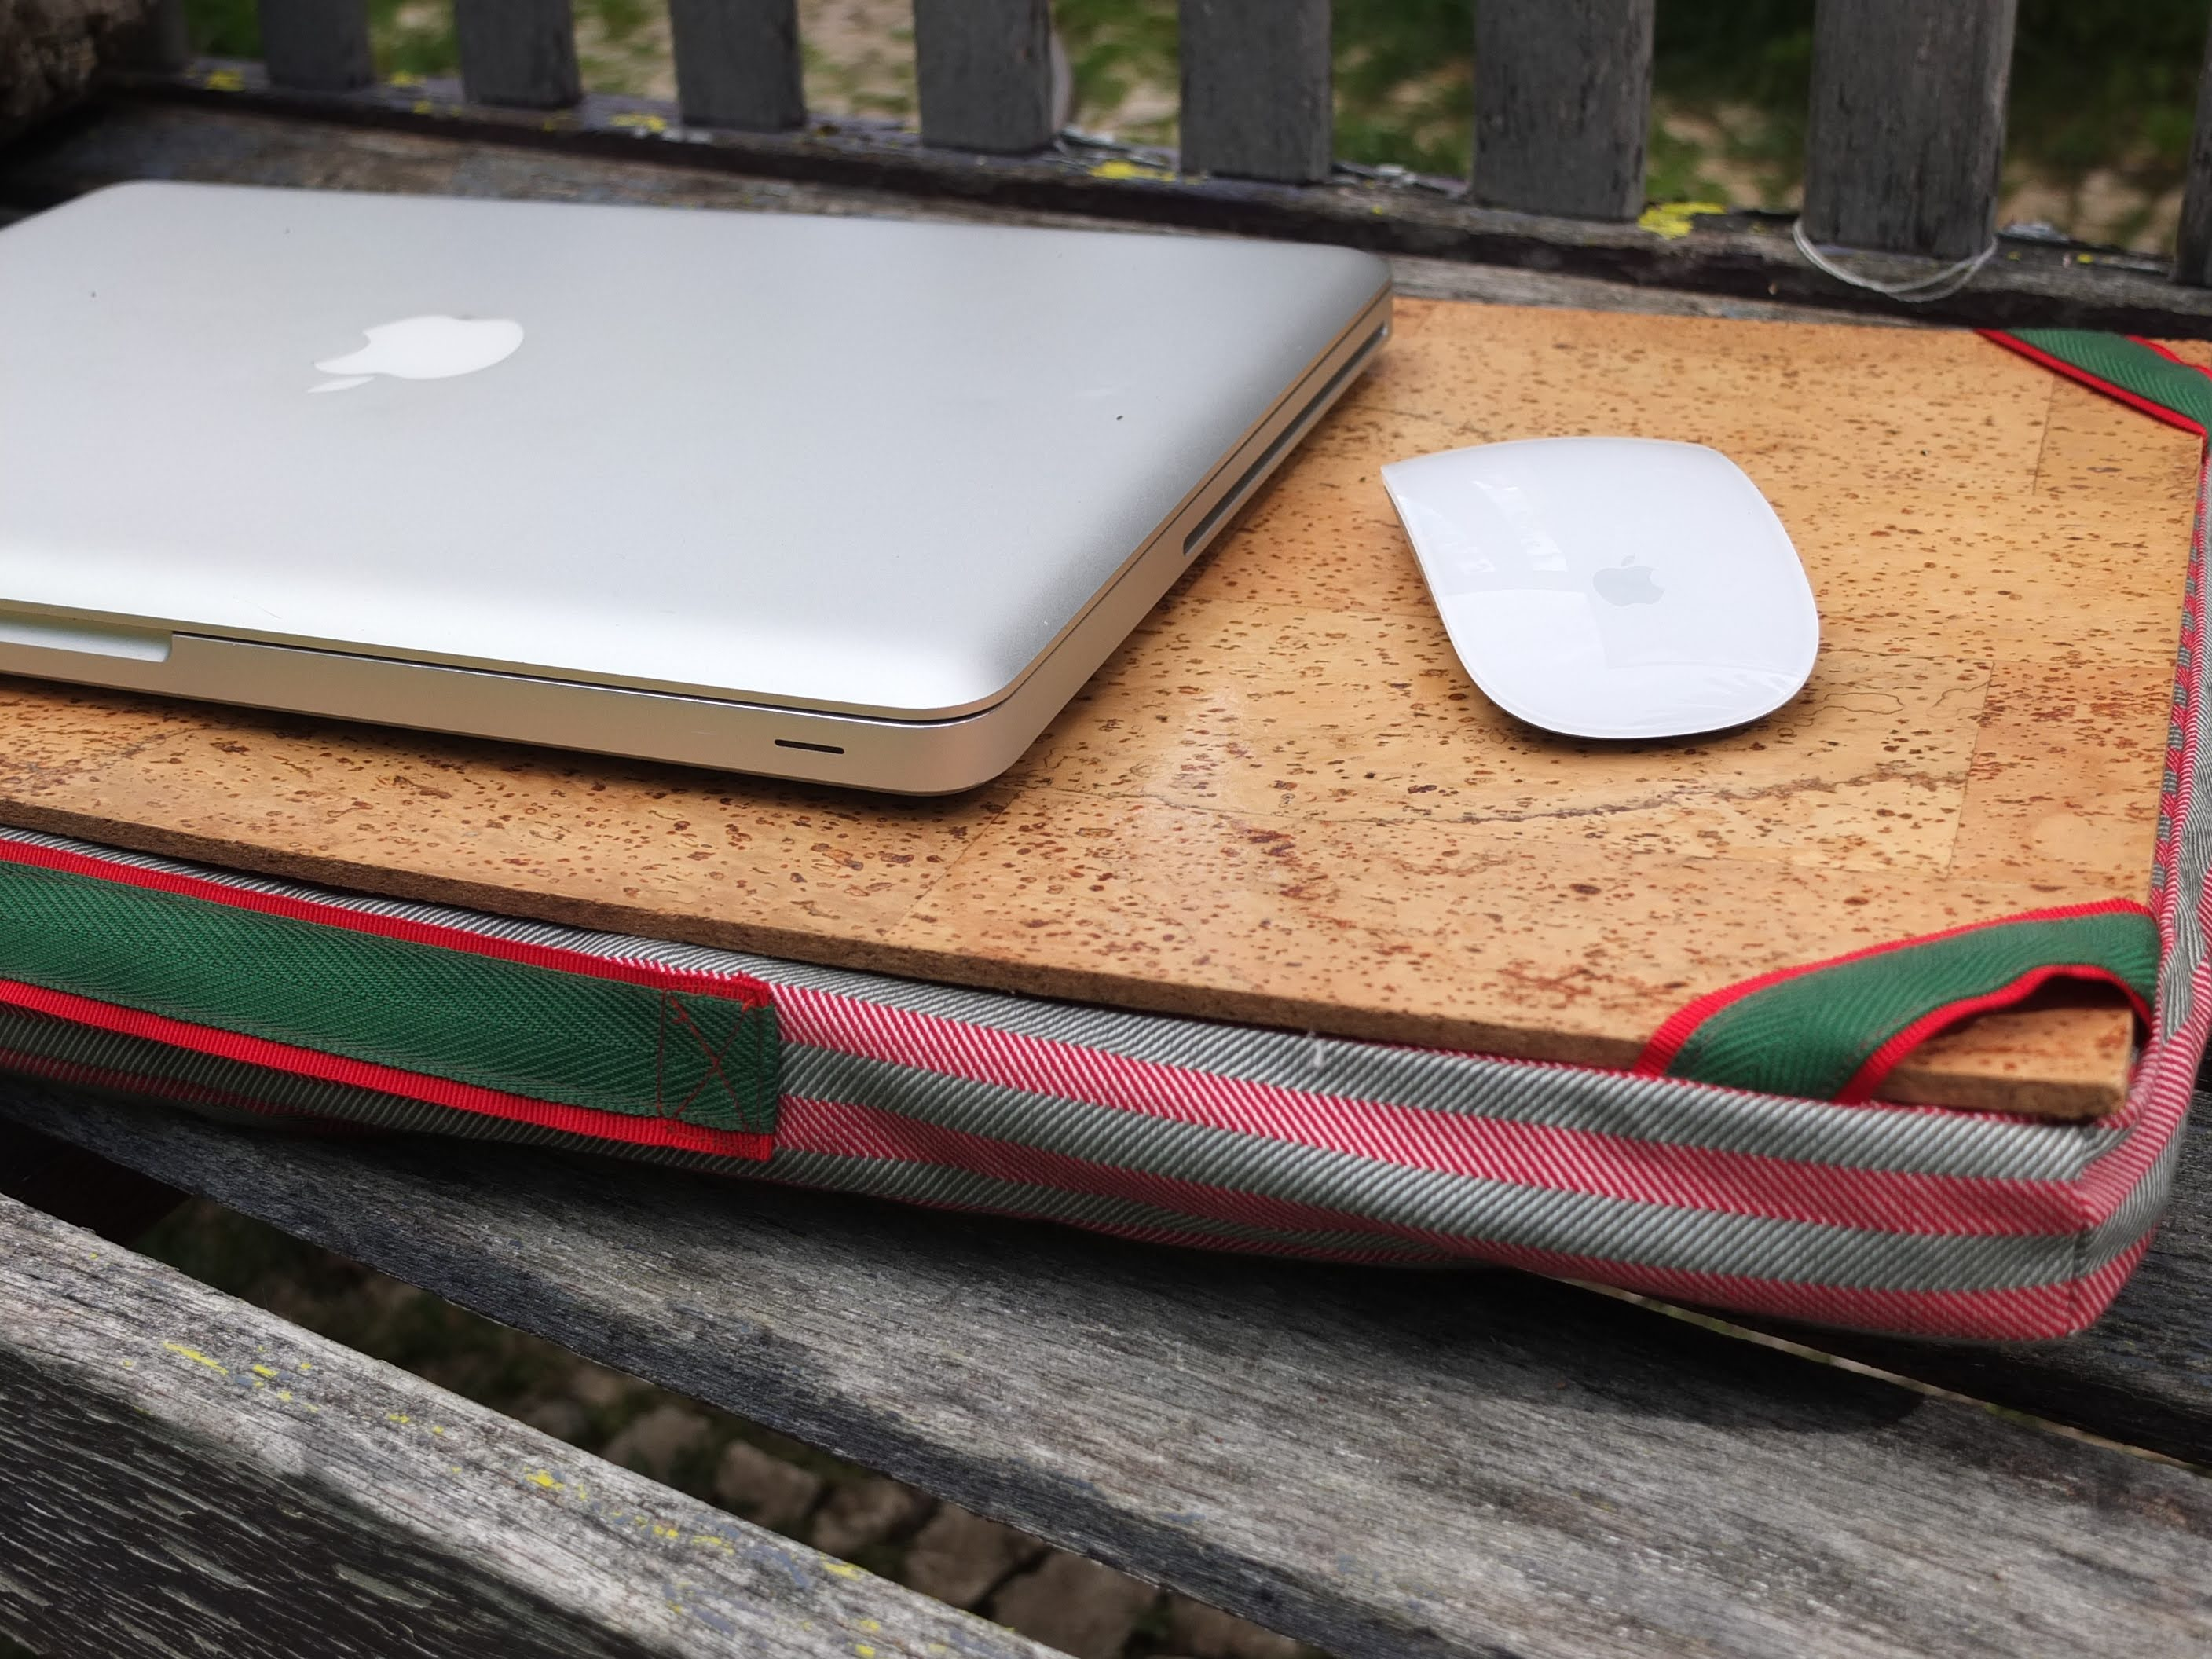 large lap desk for laptop